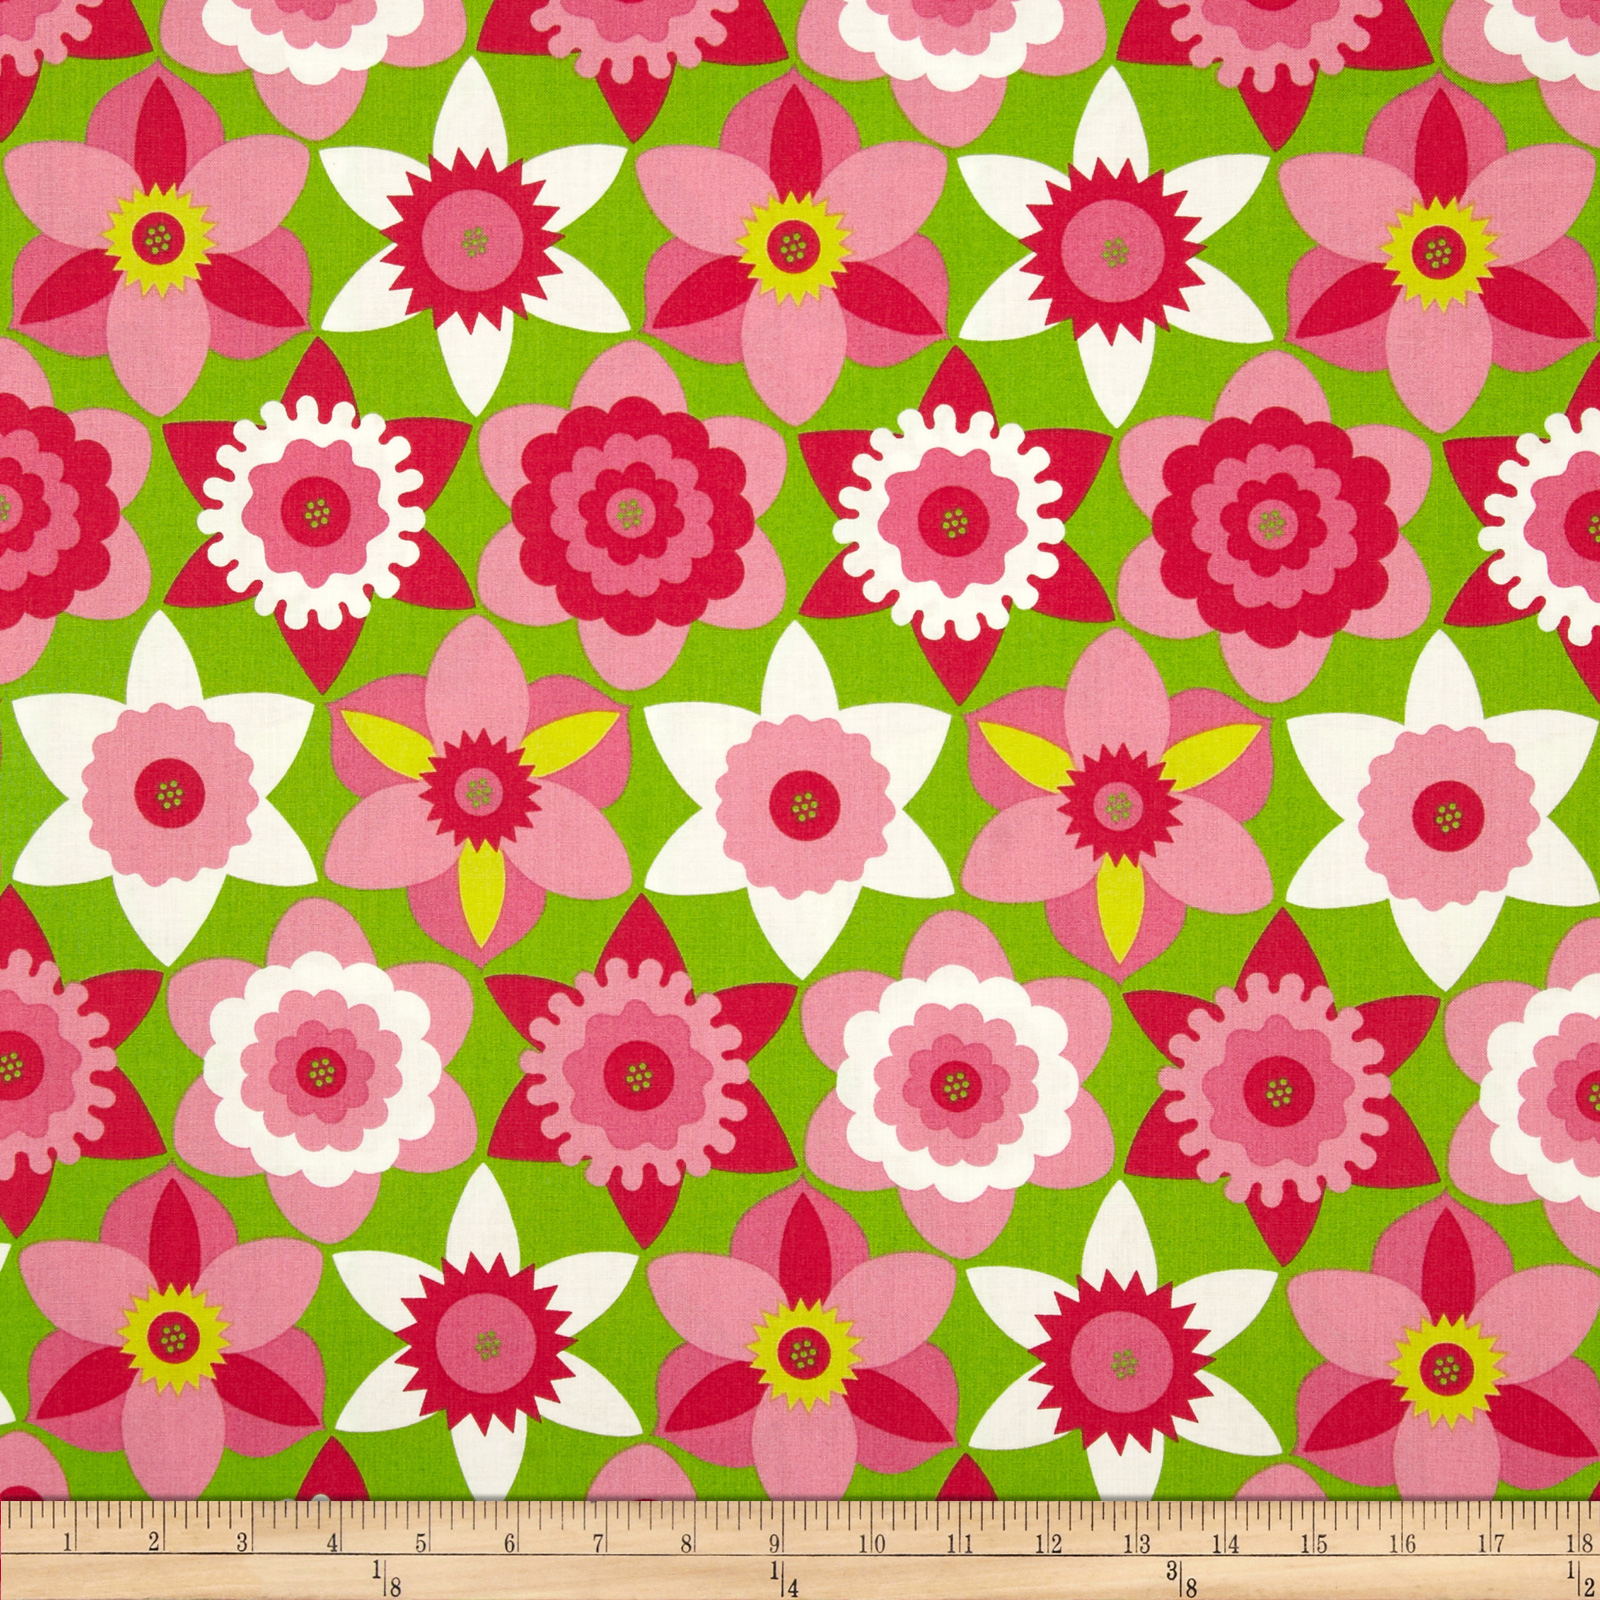 Sweet Lady Jane Daffy Down Dilly Rose Fabric